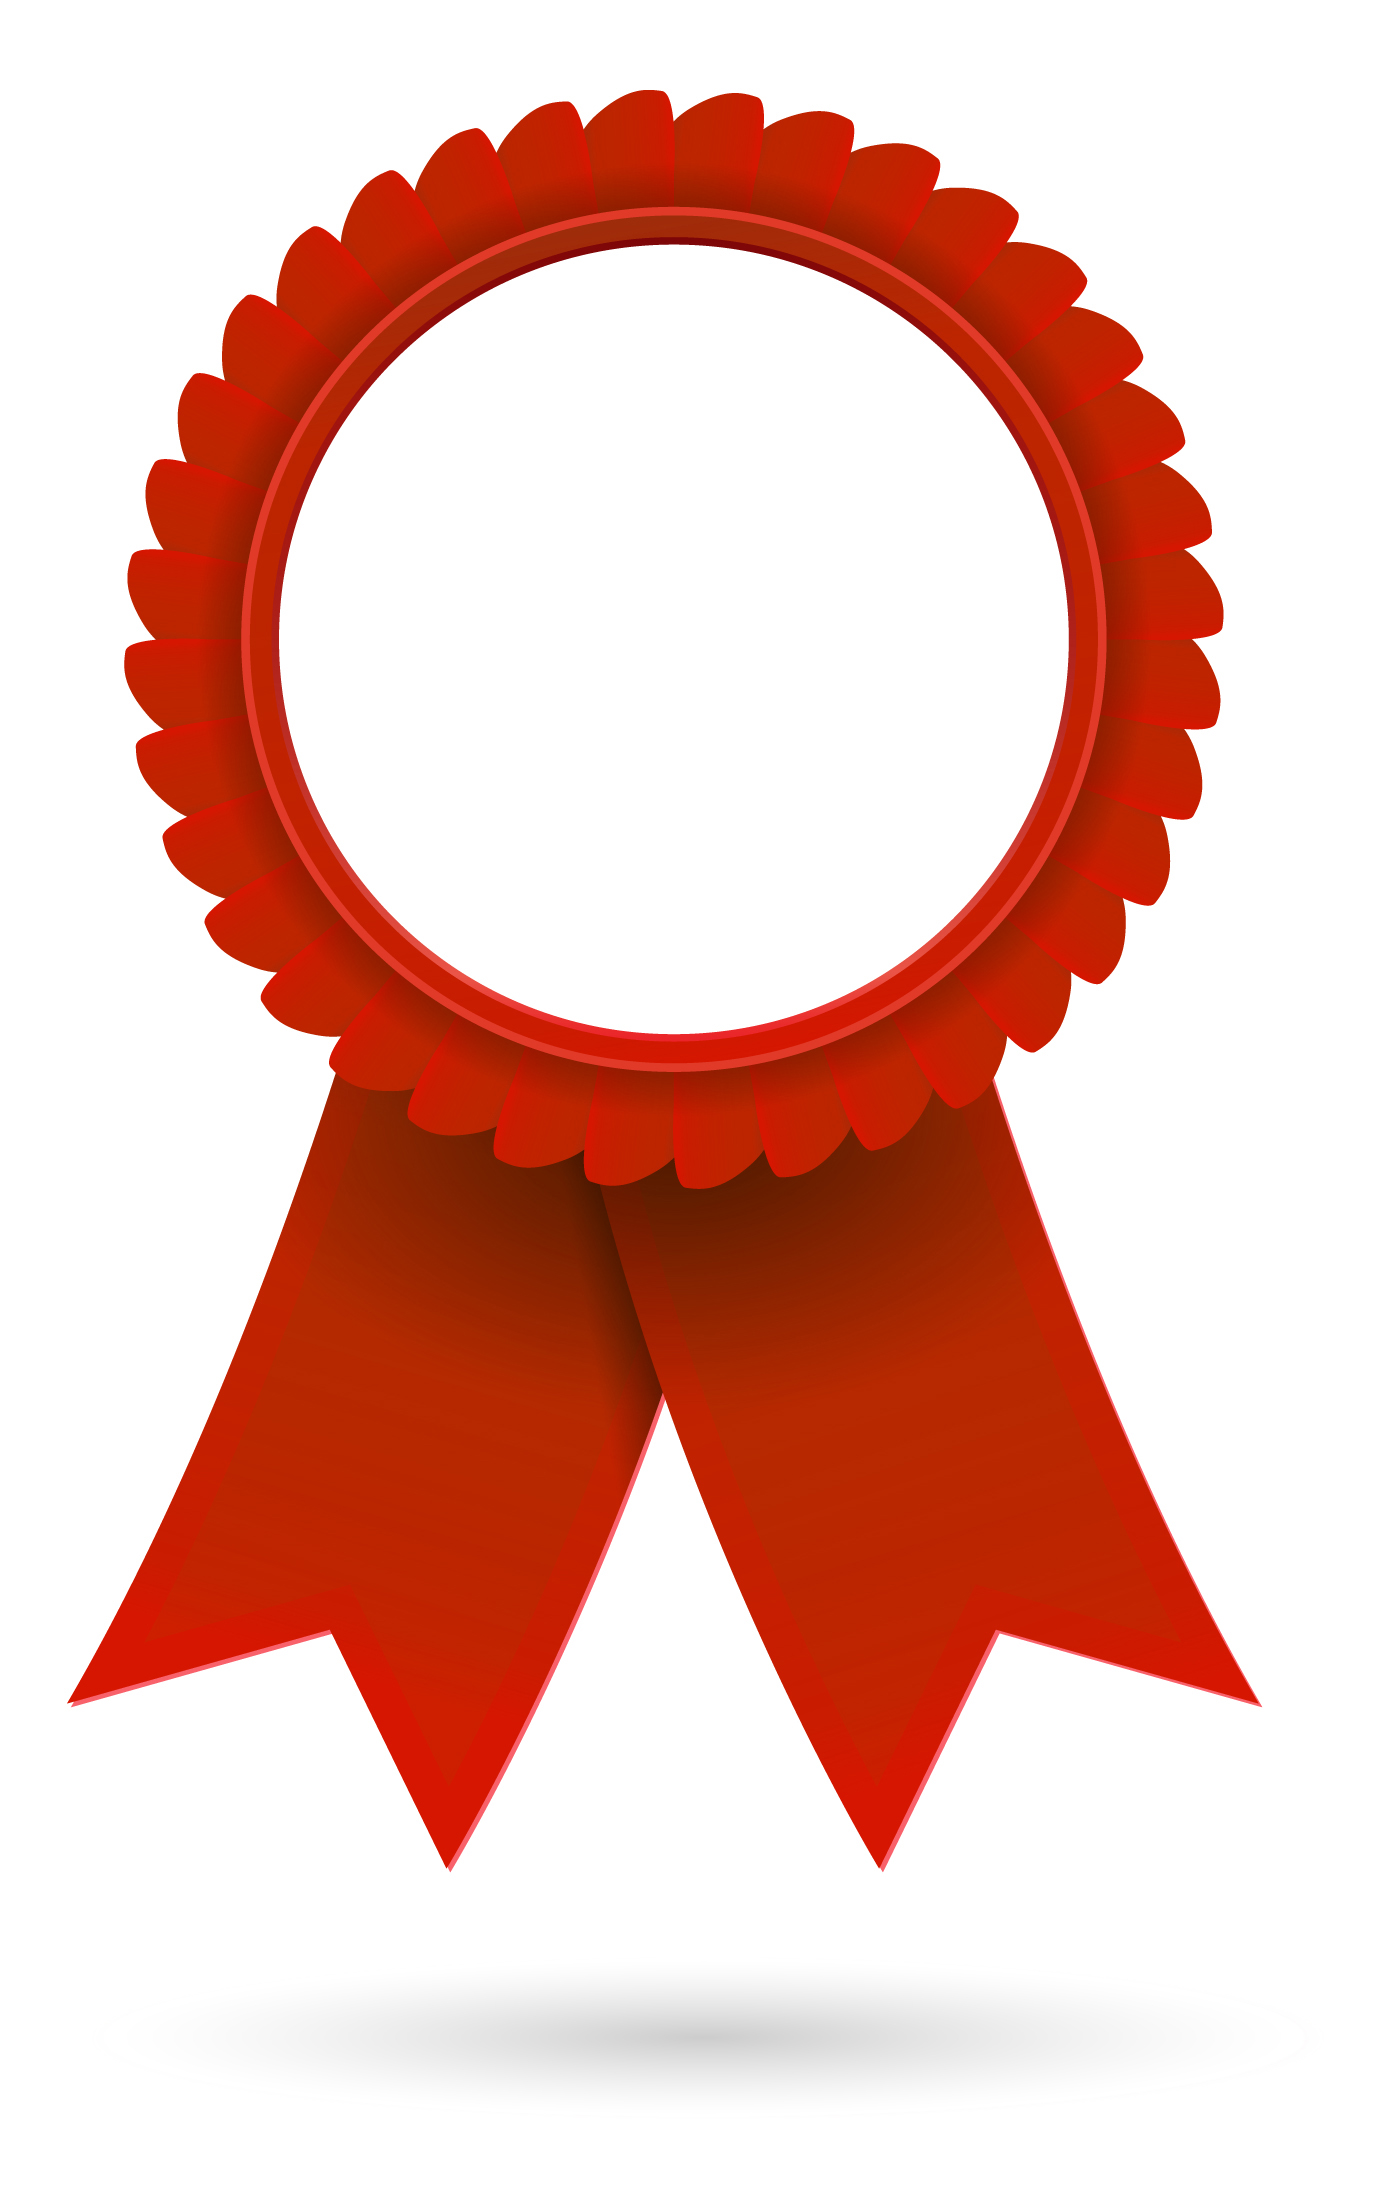 Of Red Ribbons - ClipArt Best